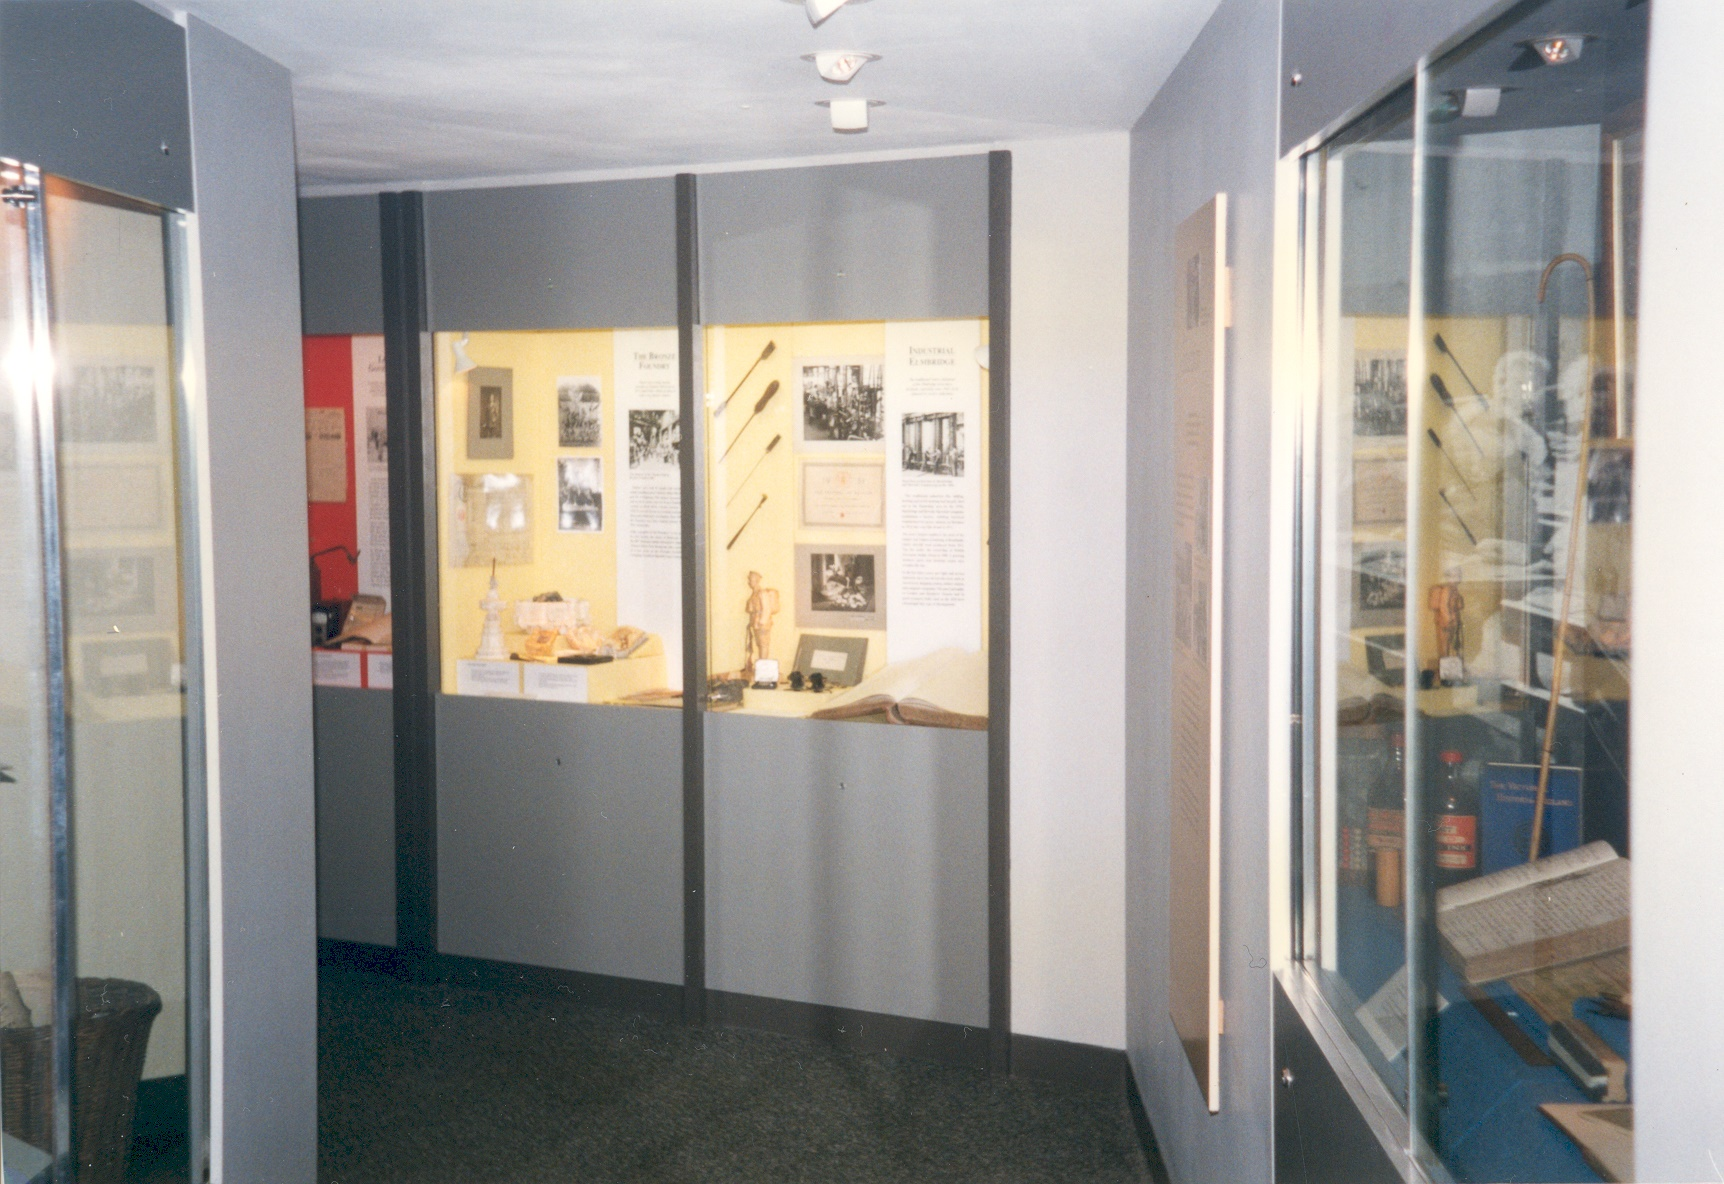 The refurbished Elmbridge Museum, showing the Industry case, with the Education display on the right.